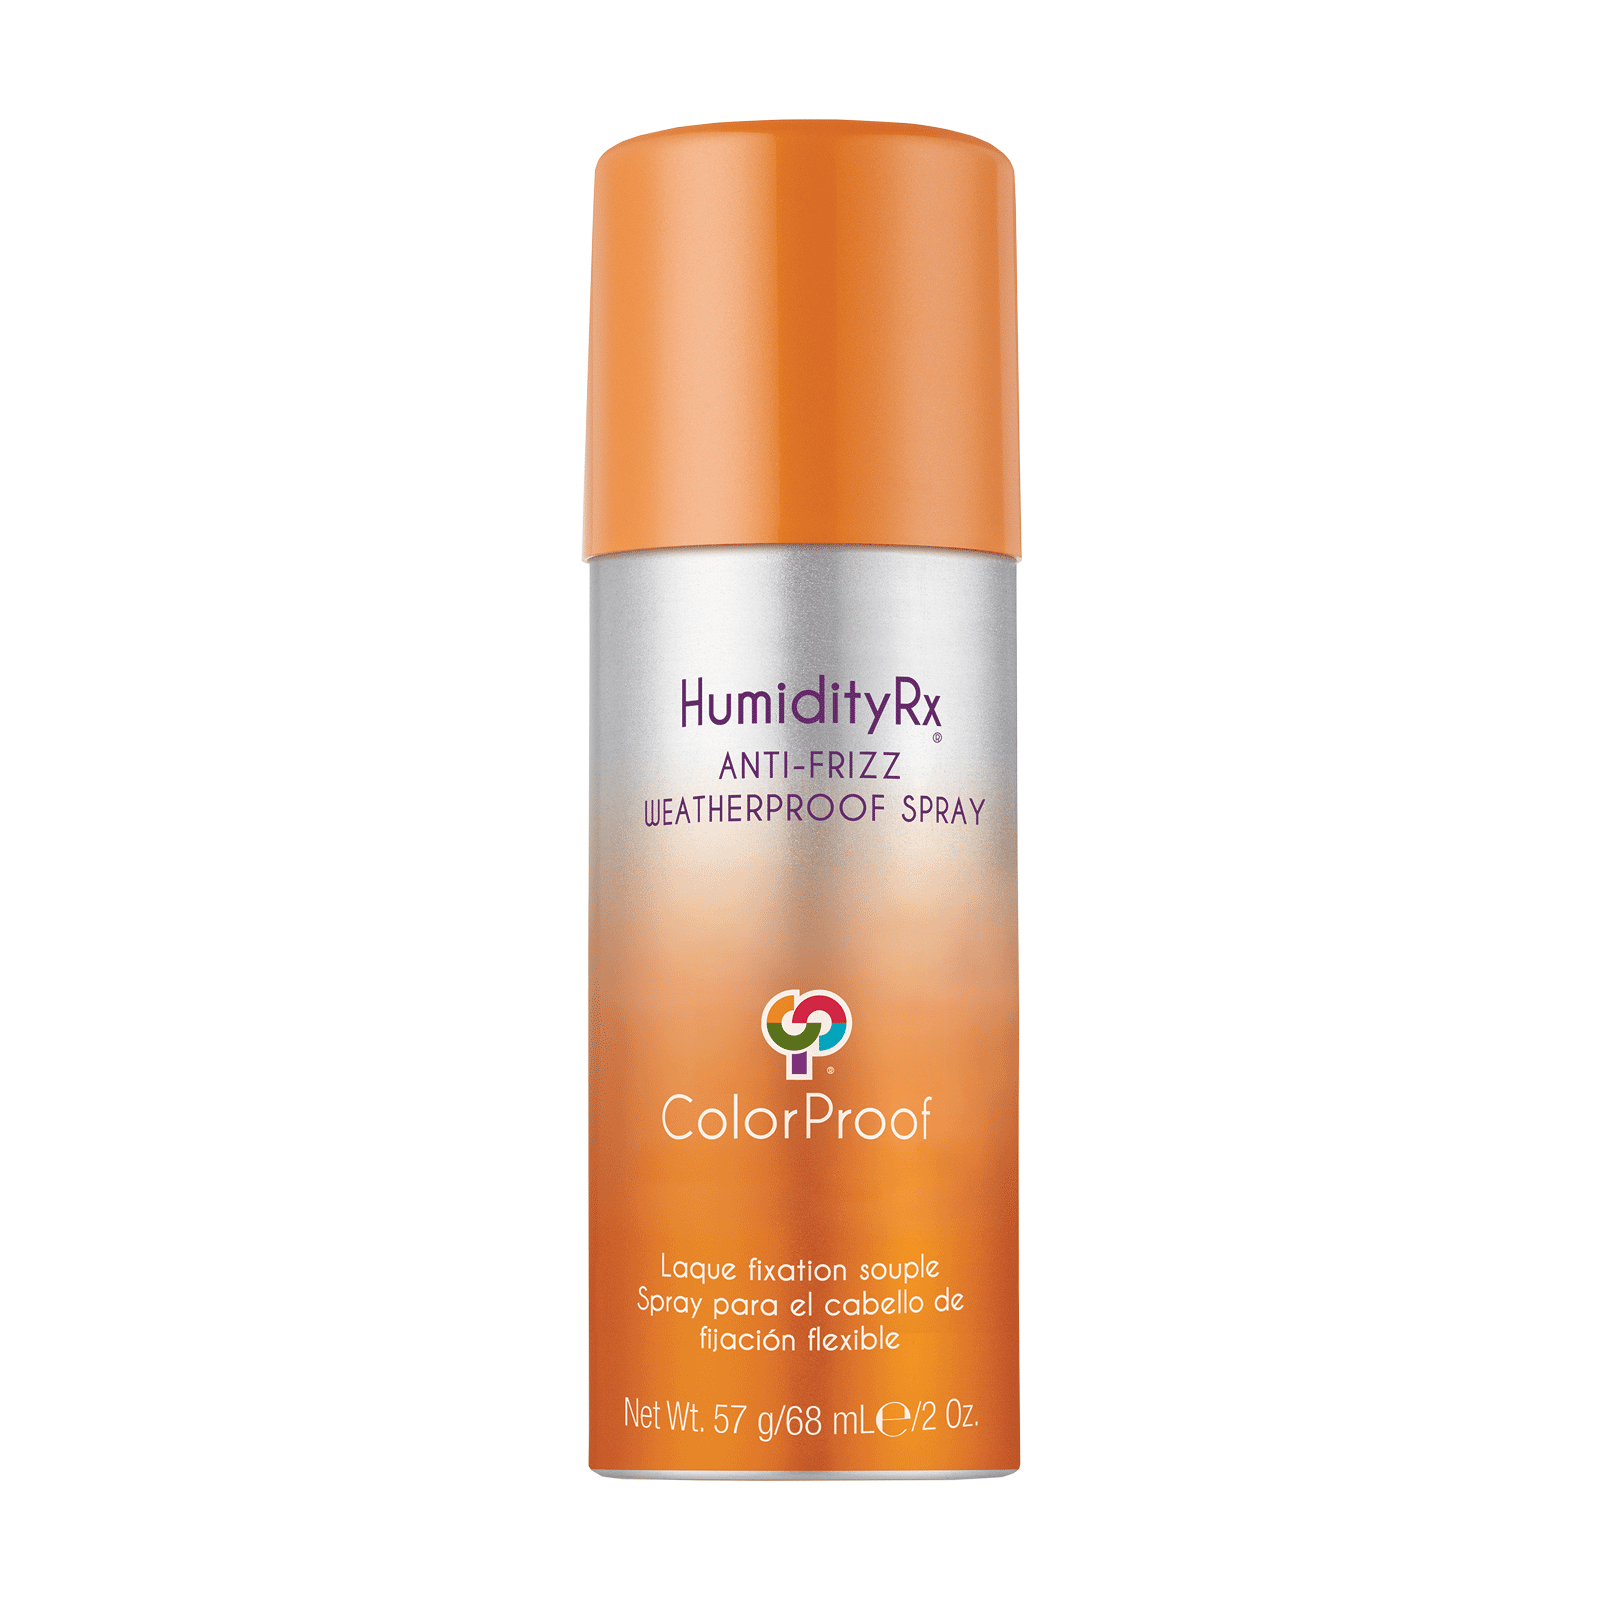 Humidity RX Anti-Frizz Weatherproof Spray